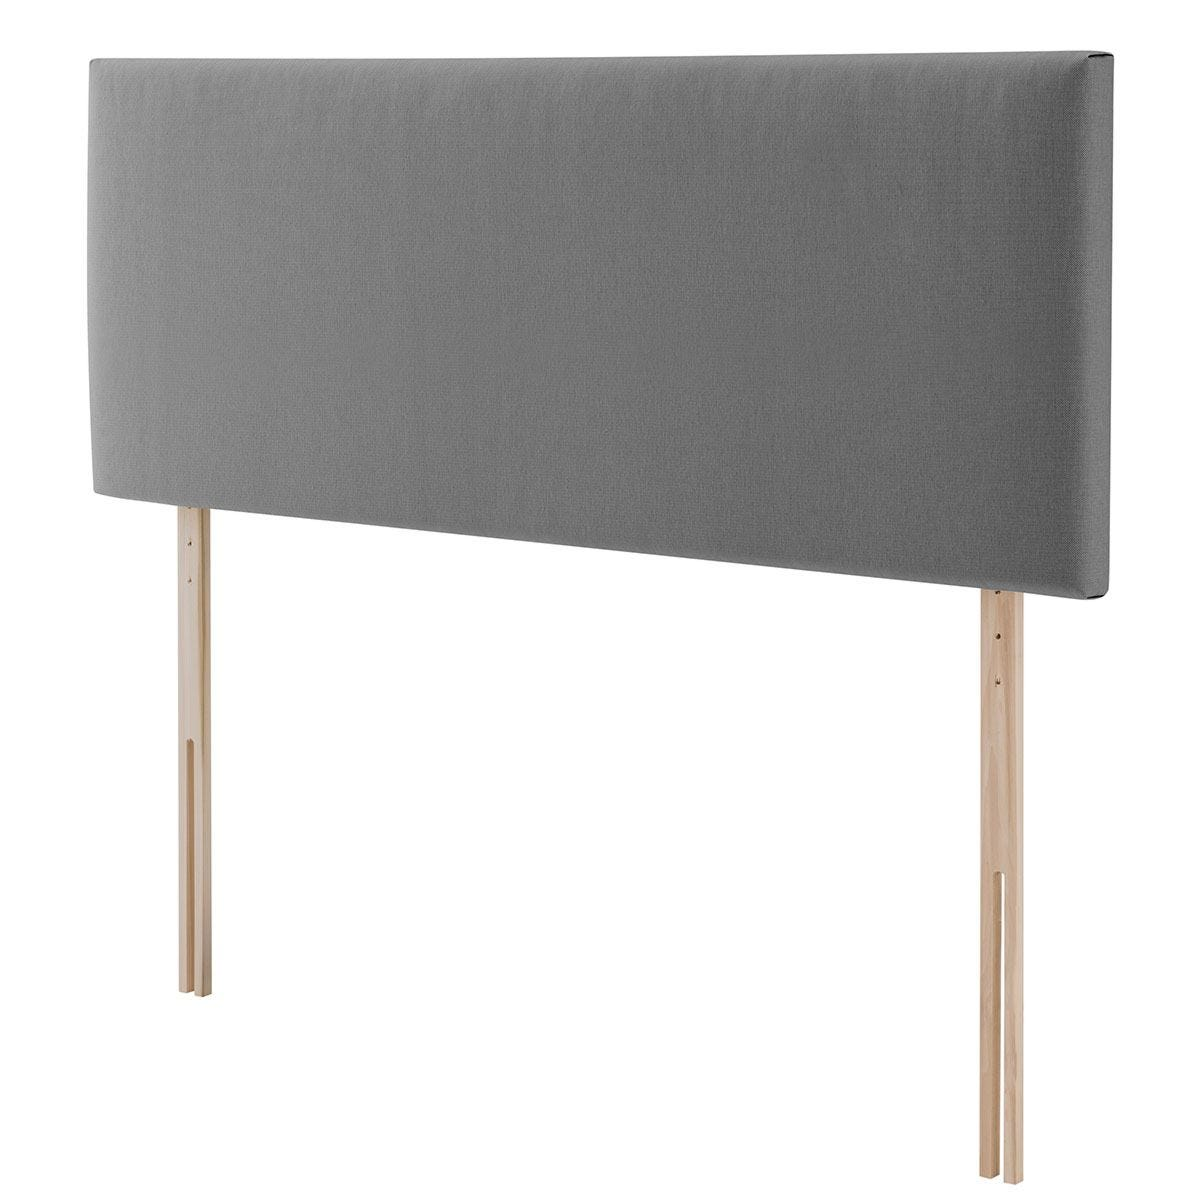 Silentnight Lyon Grey Headboard - Single